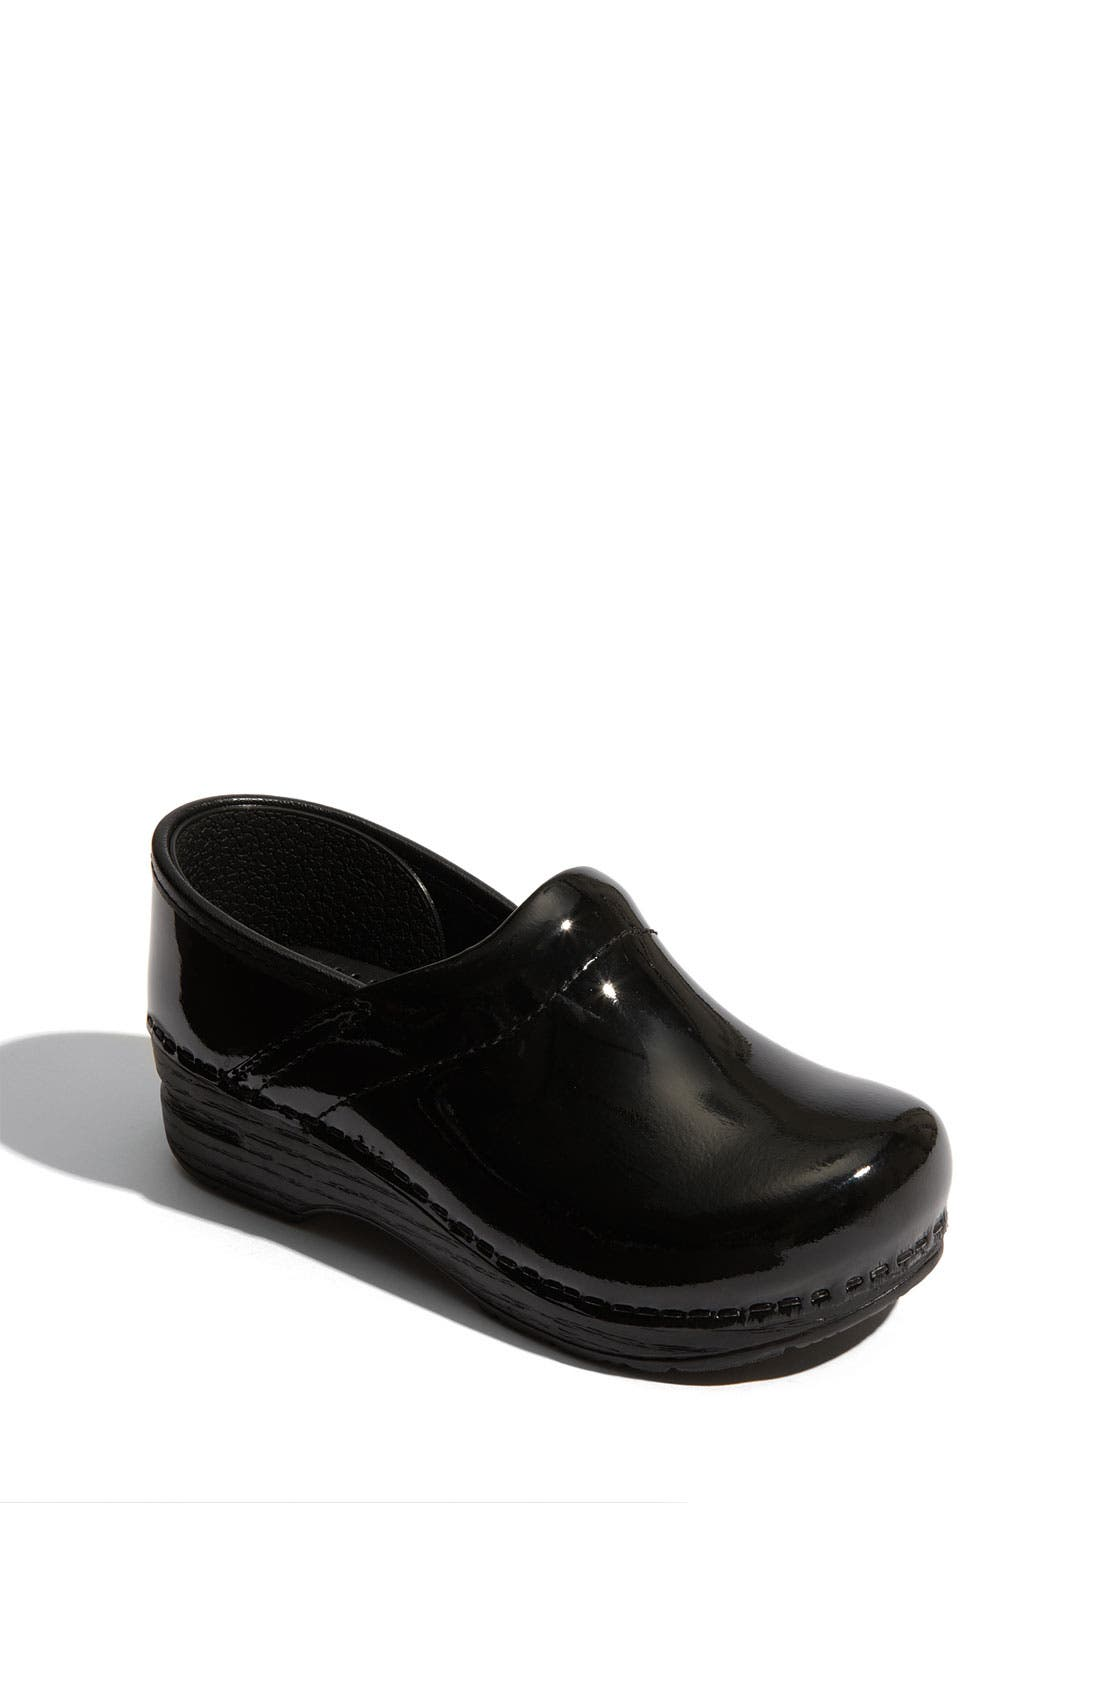 DANSKO 'Gitte' Clog, Main, color, 002